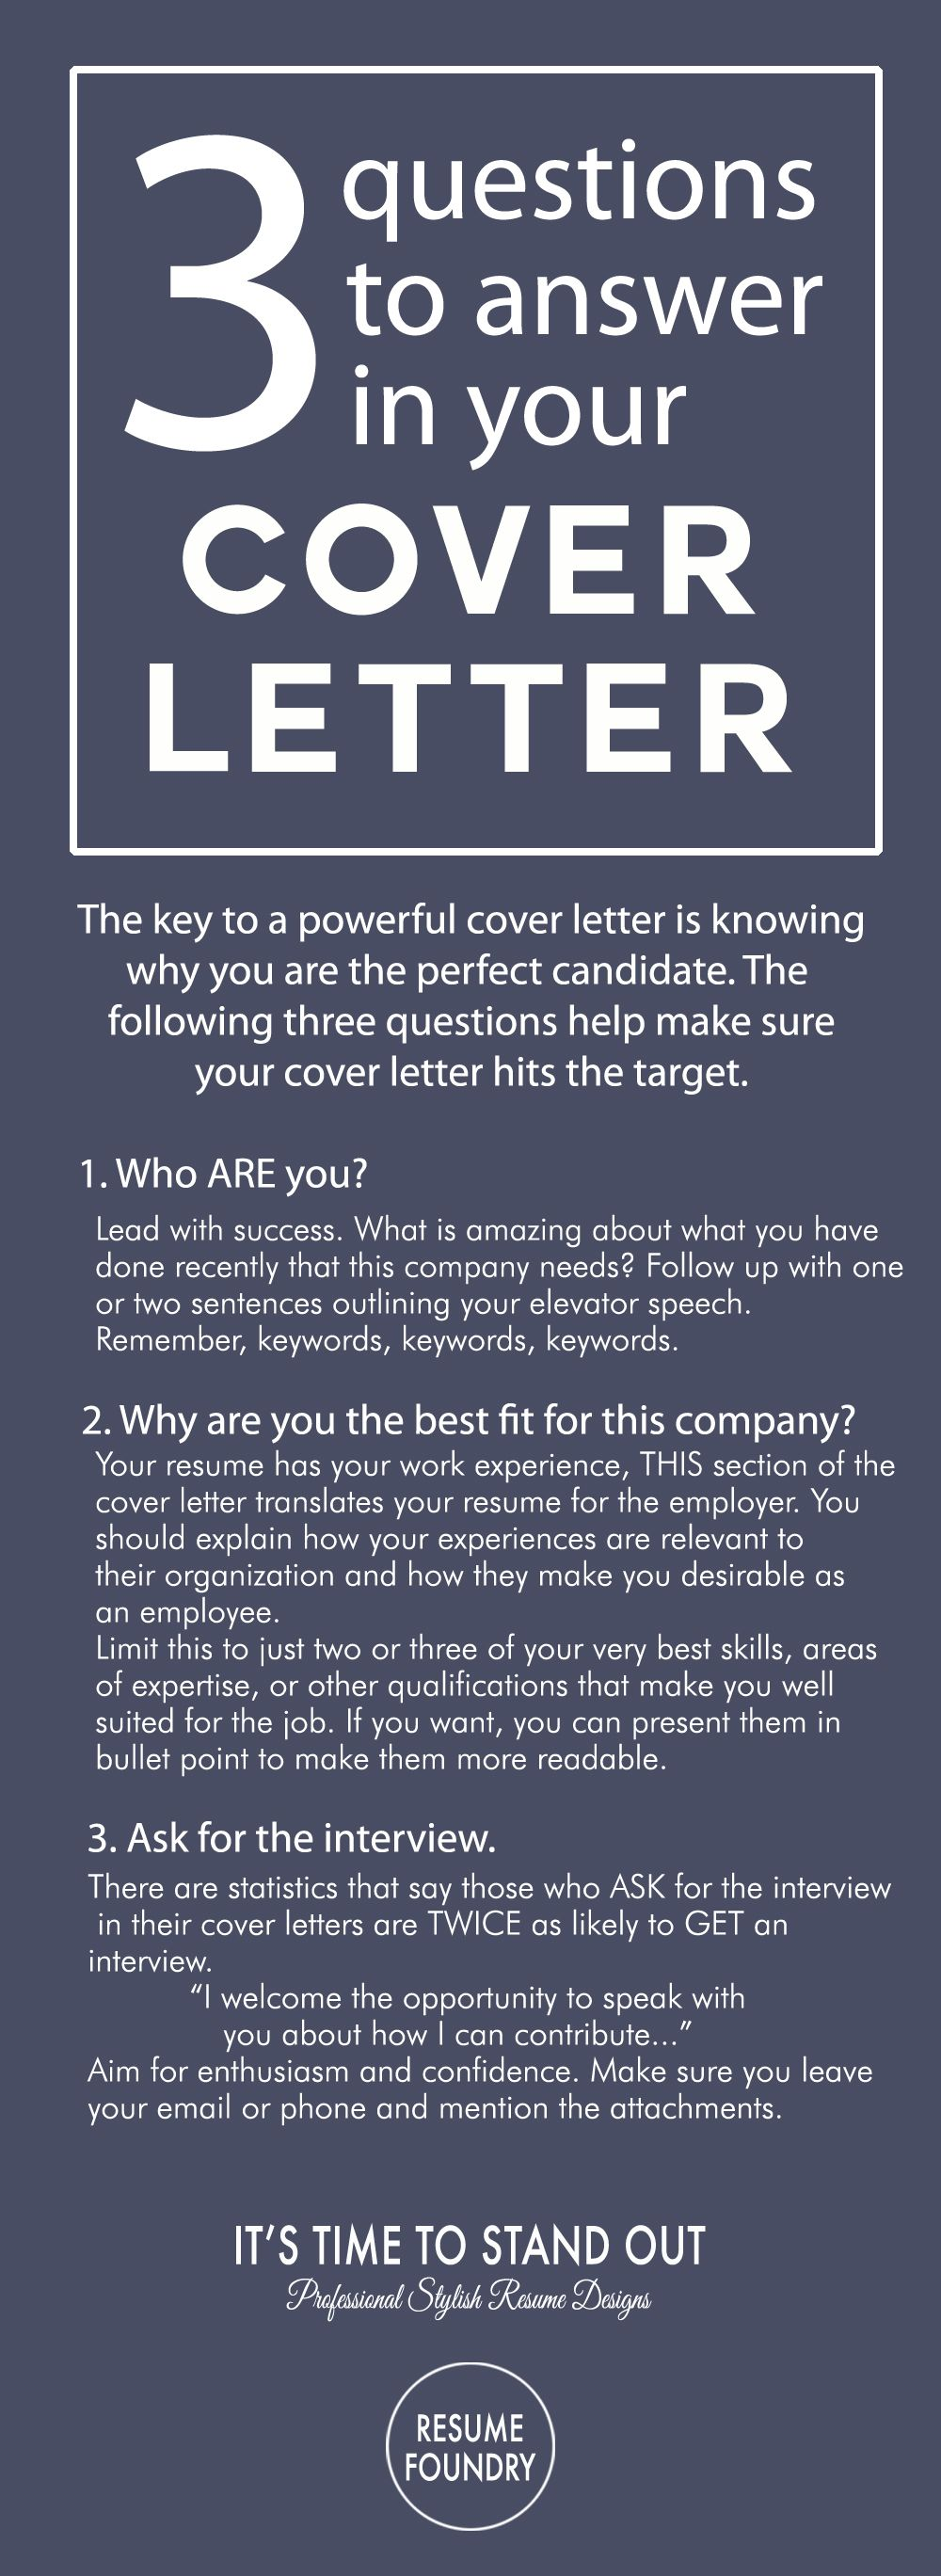 Pin by Heather Jean on Career | Job career, Job resume, Cover letter